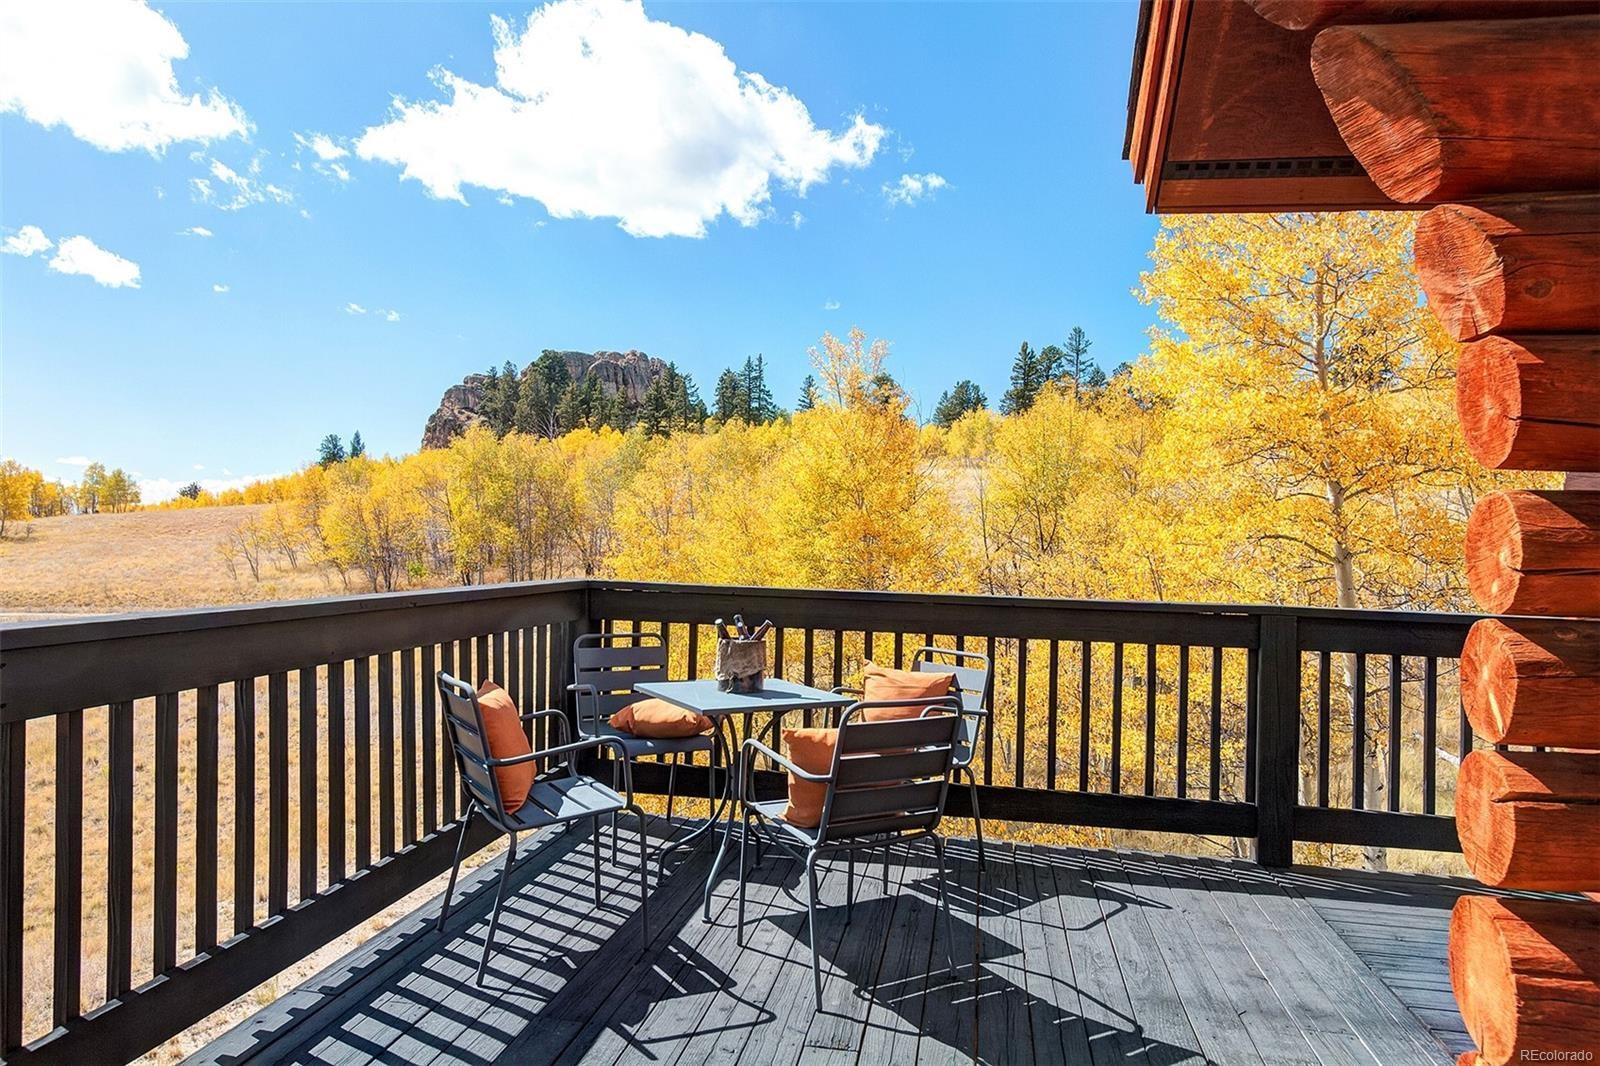 MLS# 8358796 - 9 - 230 Ignacio Way, Como, CO 80456